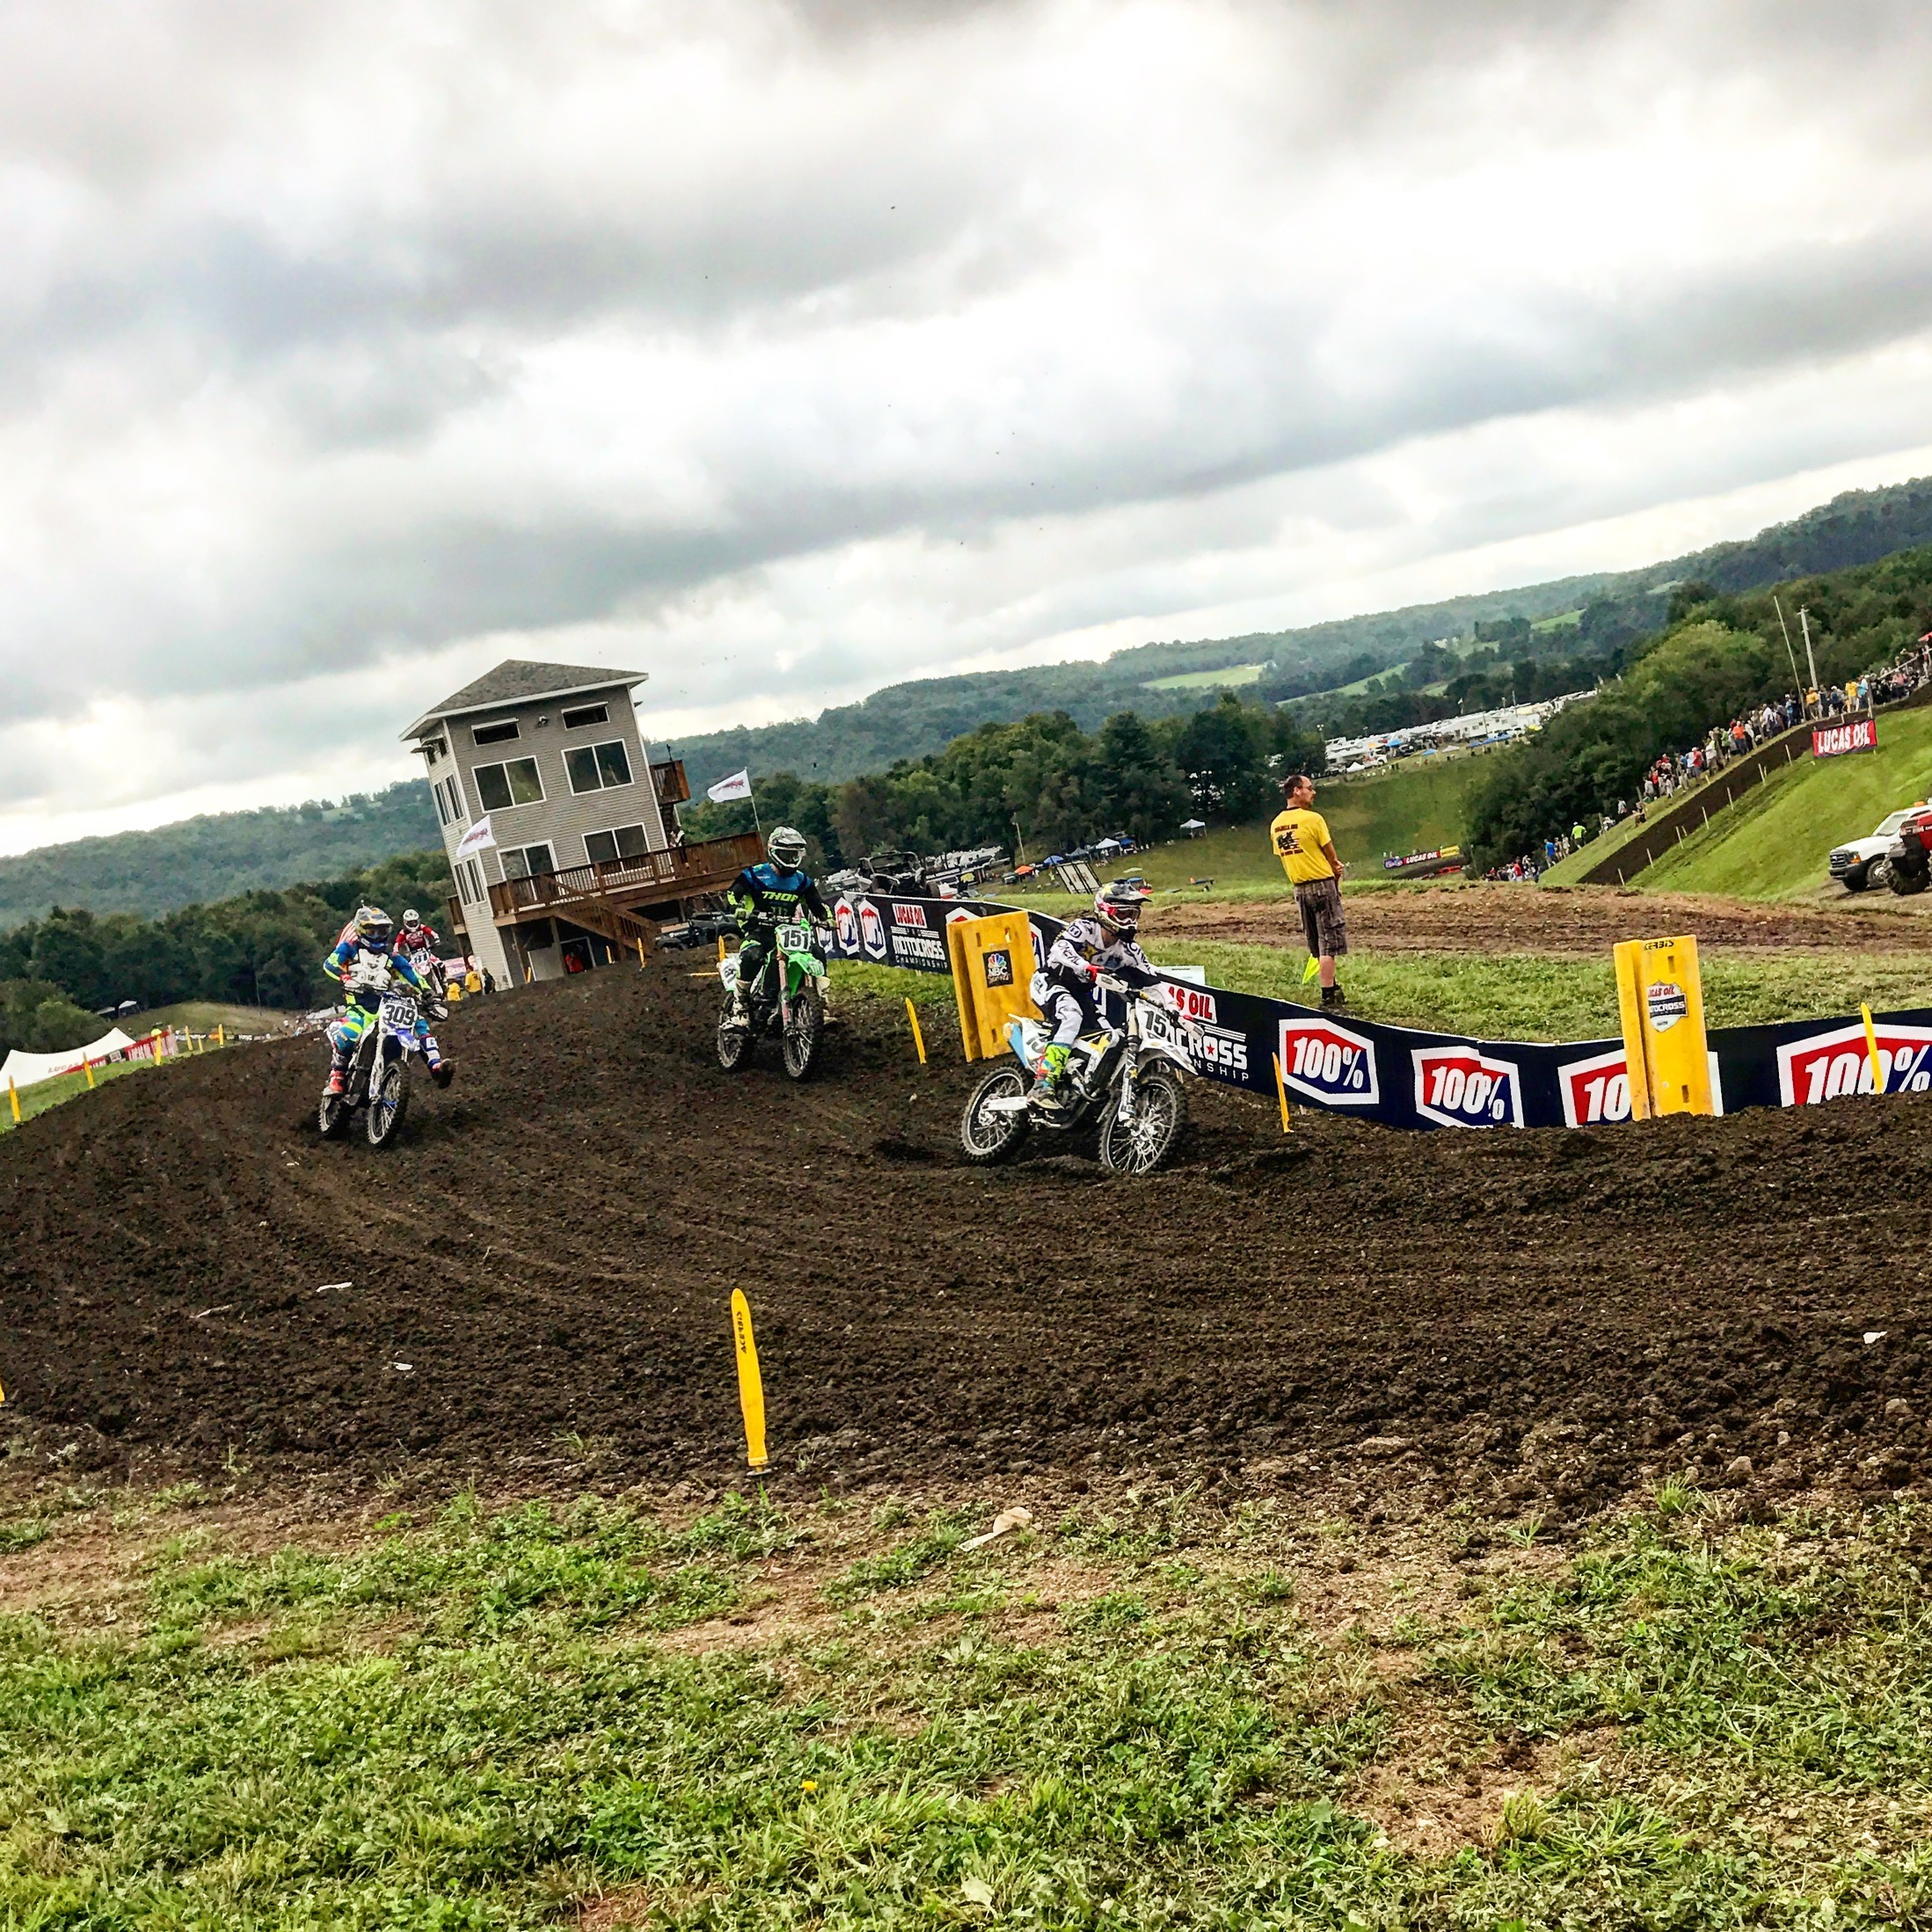 The Unadilla track is one of the favorites for both fans and riders alike.  The dirt is some of the best around and the jumps and hills add to the interest and excitement.  The 450 riders found it especially fun as the track broke in and the lines began to develop allowing them to really push their machines to the limits.